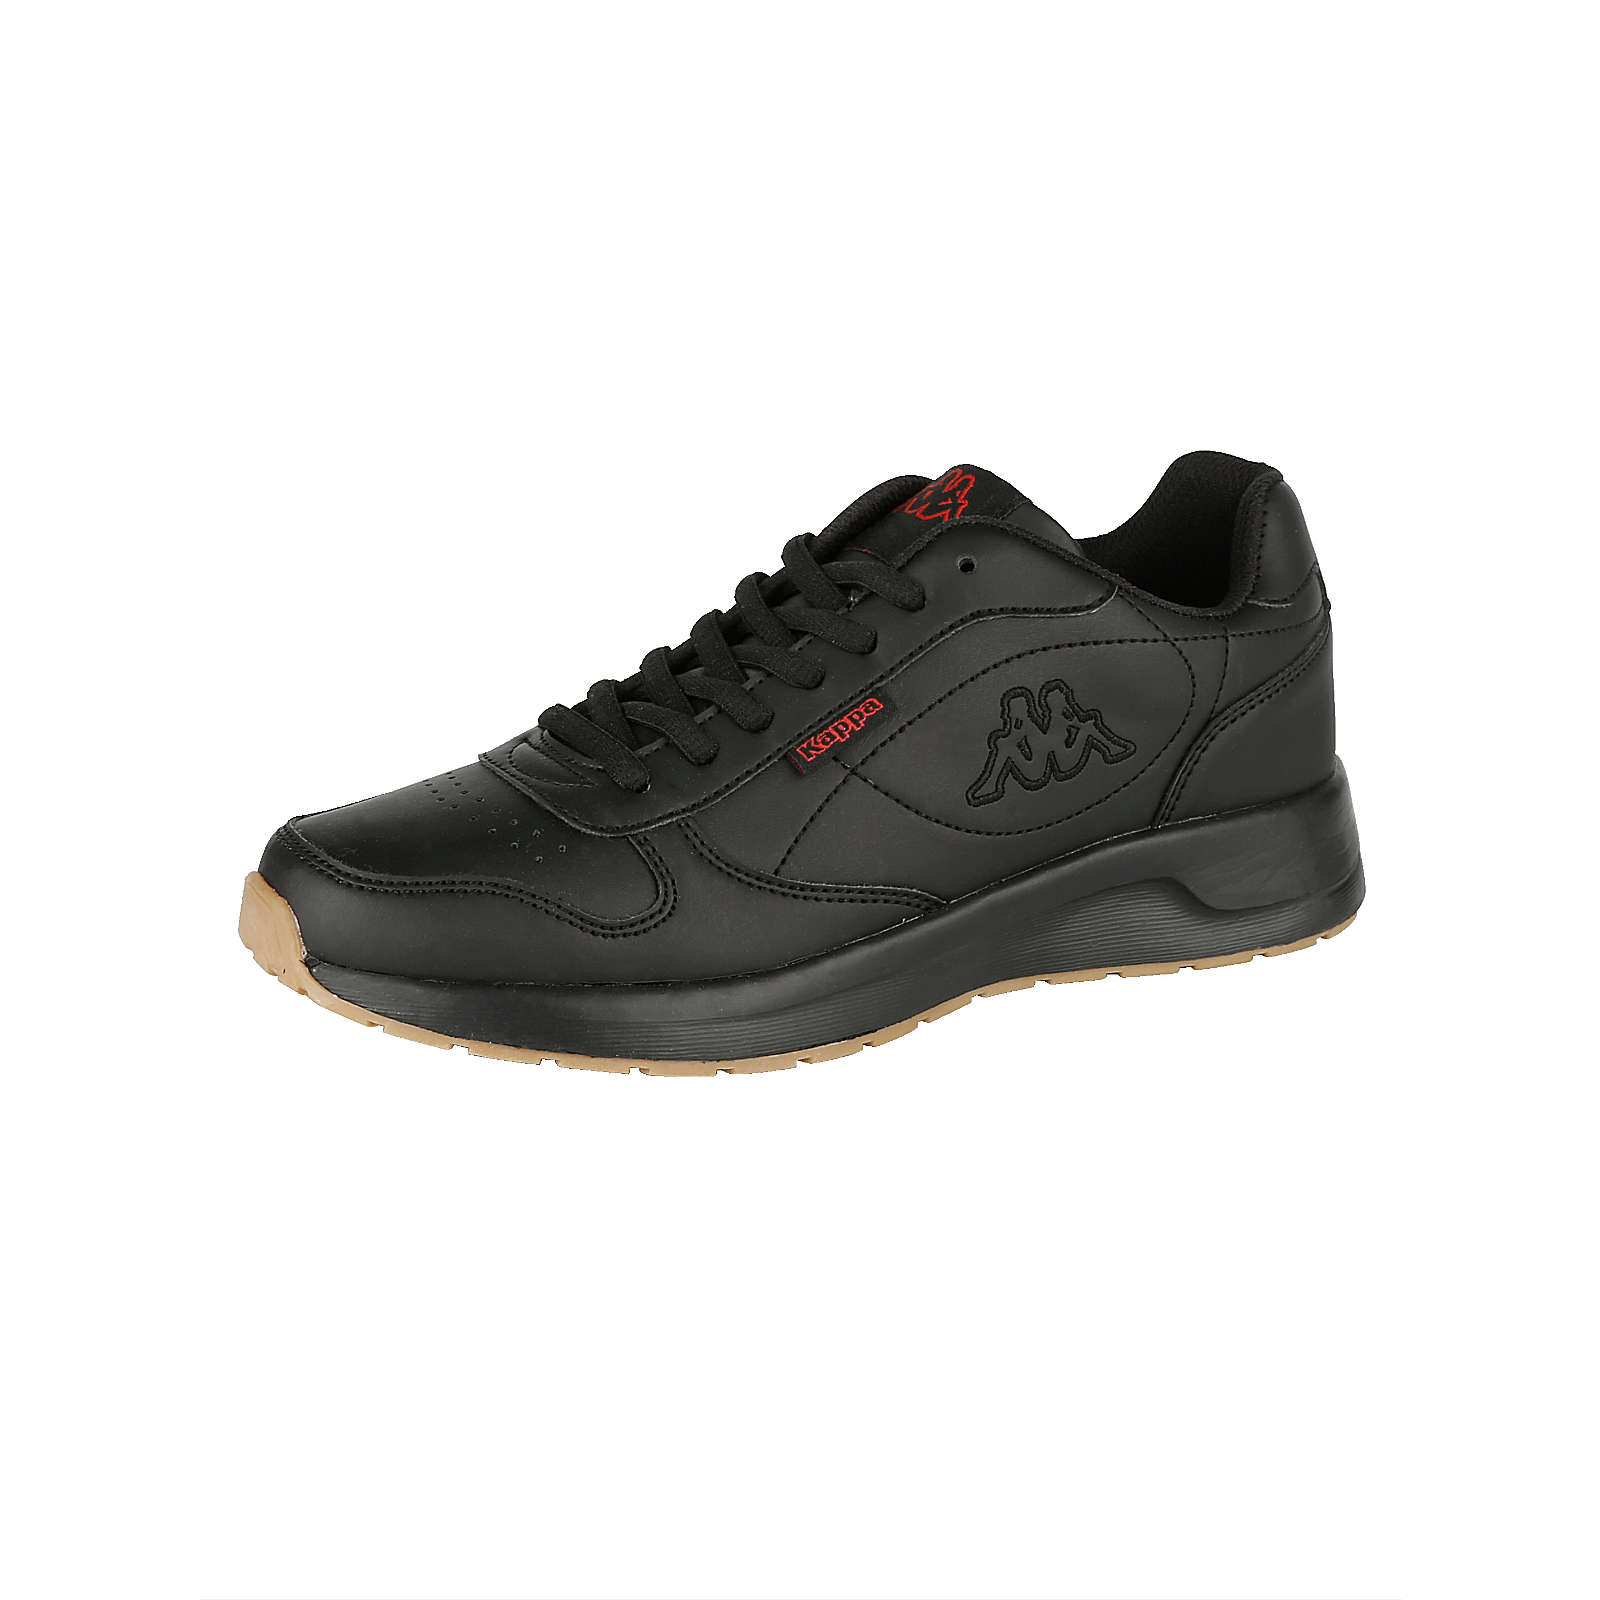 Kappa Sneakers Low schwarz Gr. 36